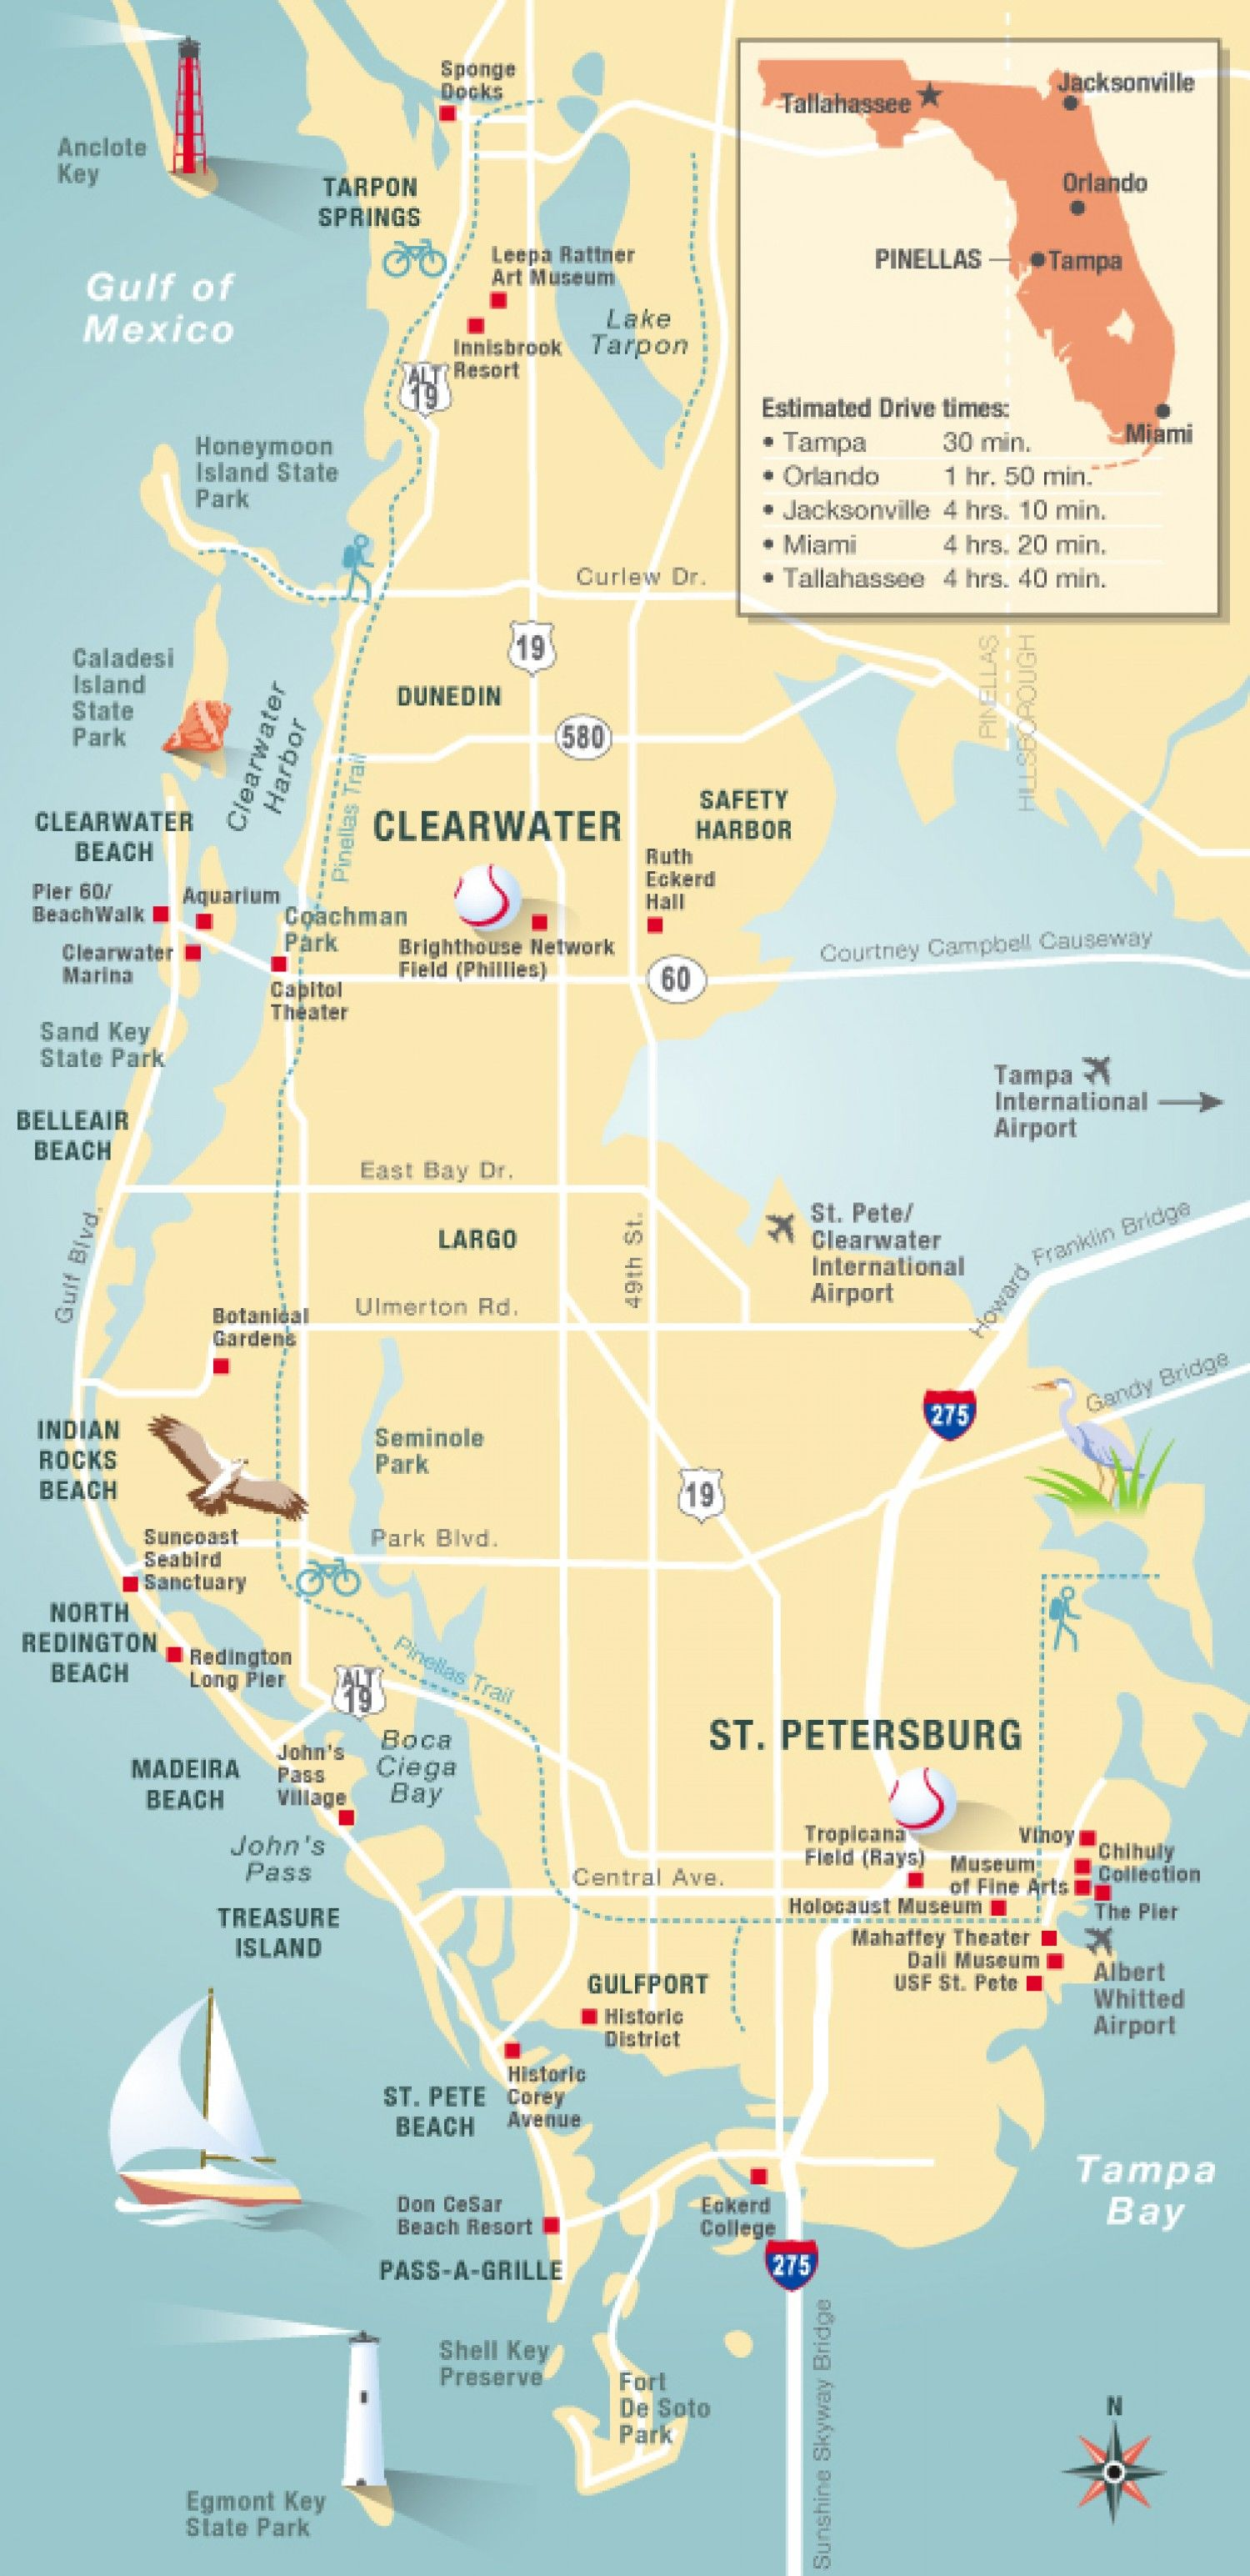 St Petersburg Florida Map.Pinellas County Map Clearwater St Petersburg Fl Travel In 2019